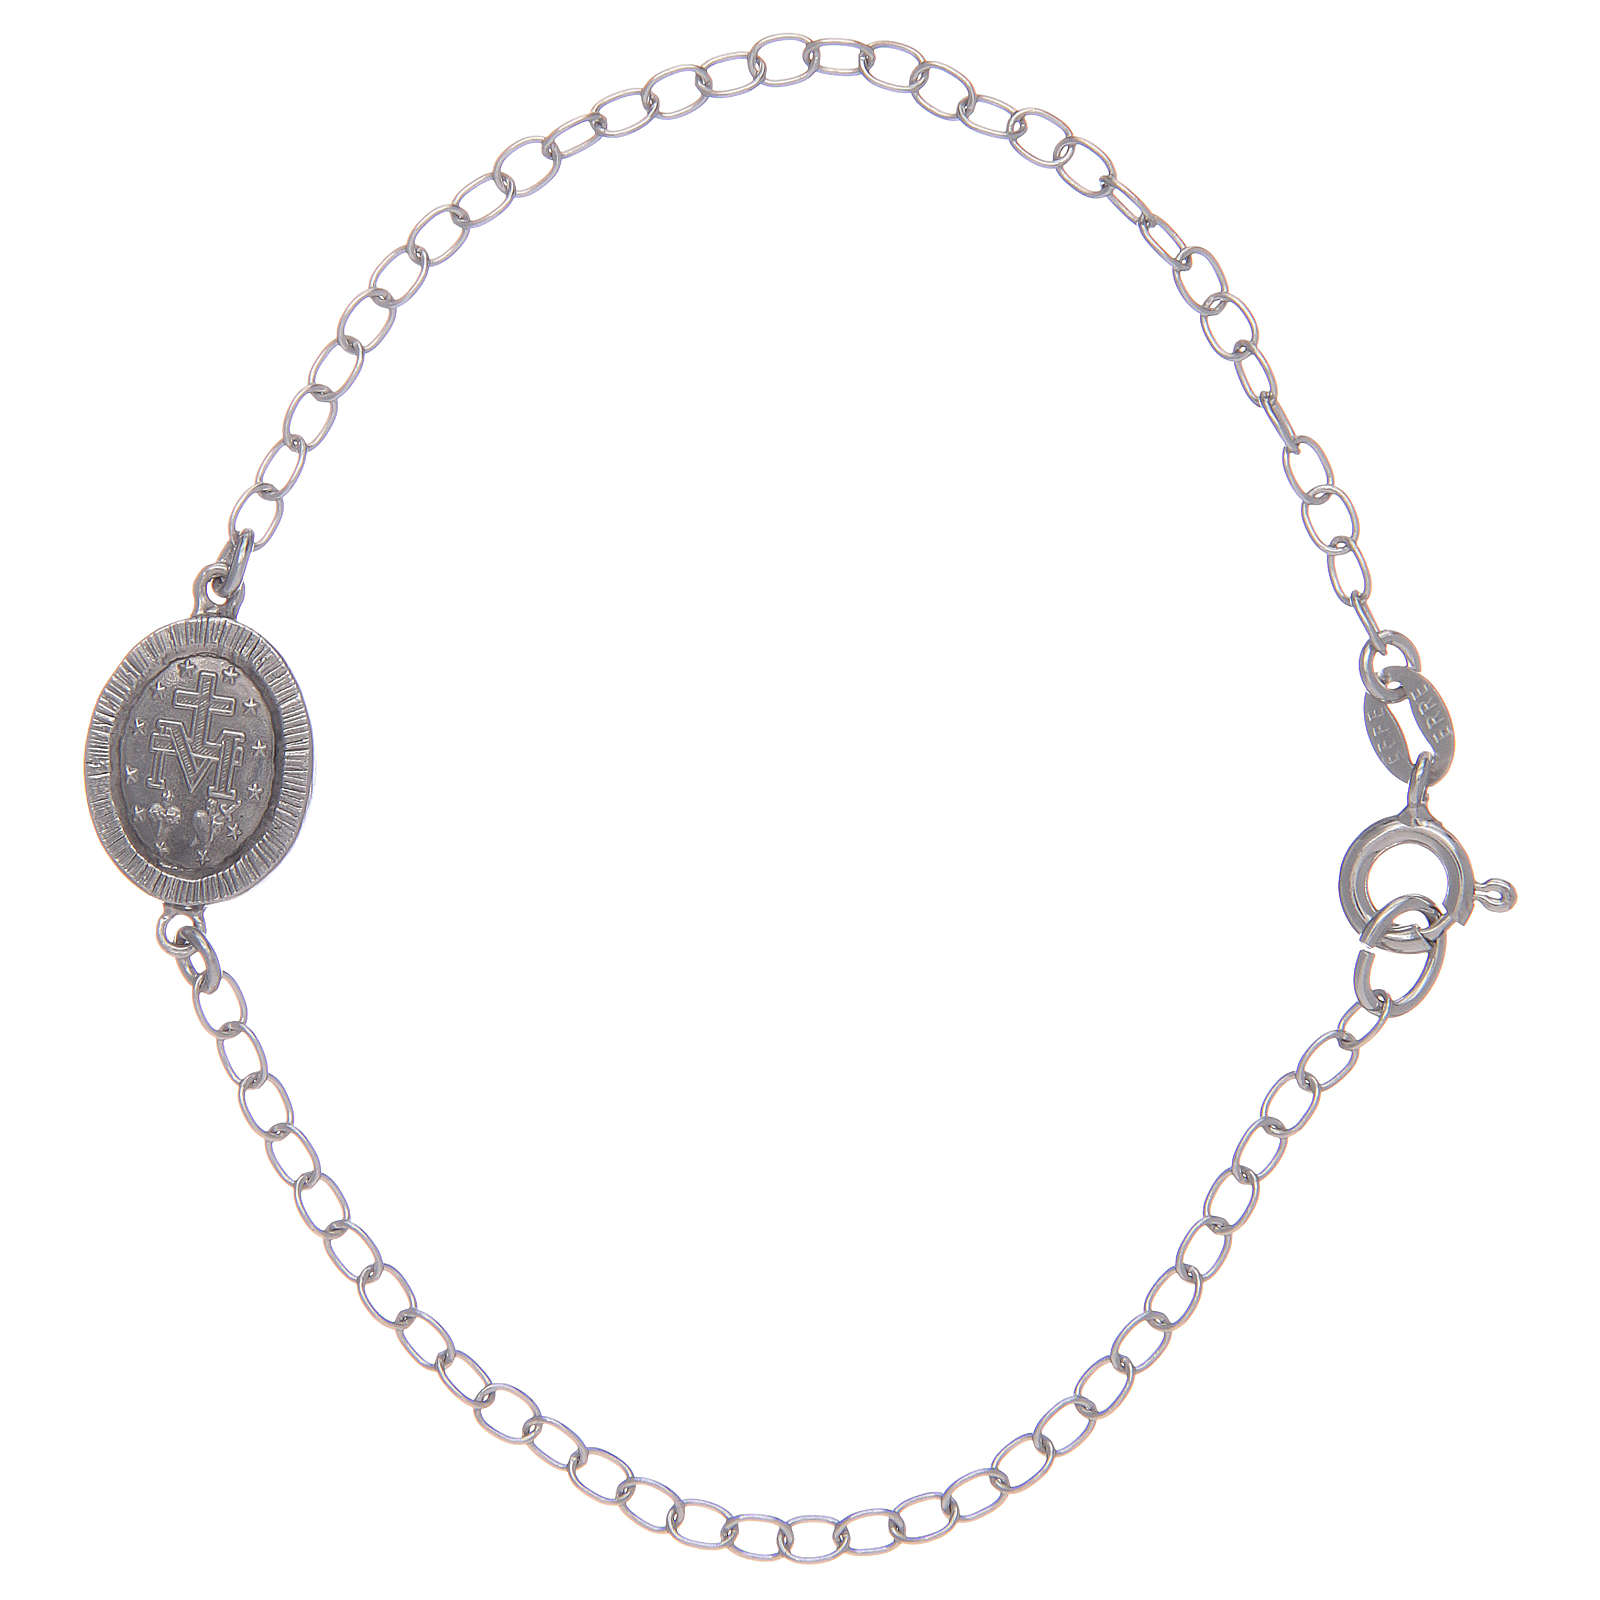 Bracelet in 925 sterling silver with transparent stones and miraculous medalet 4